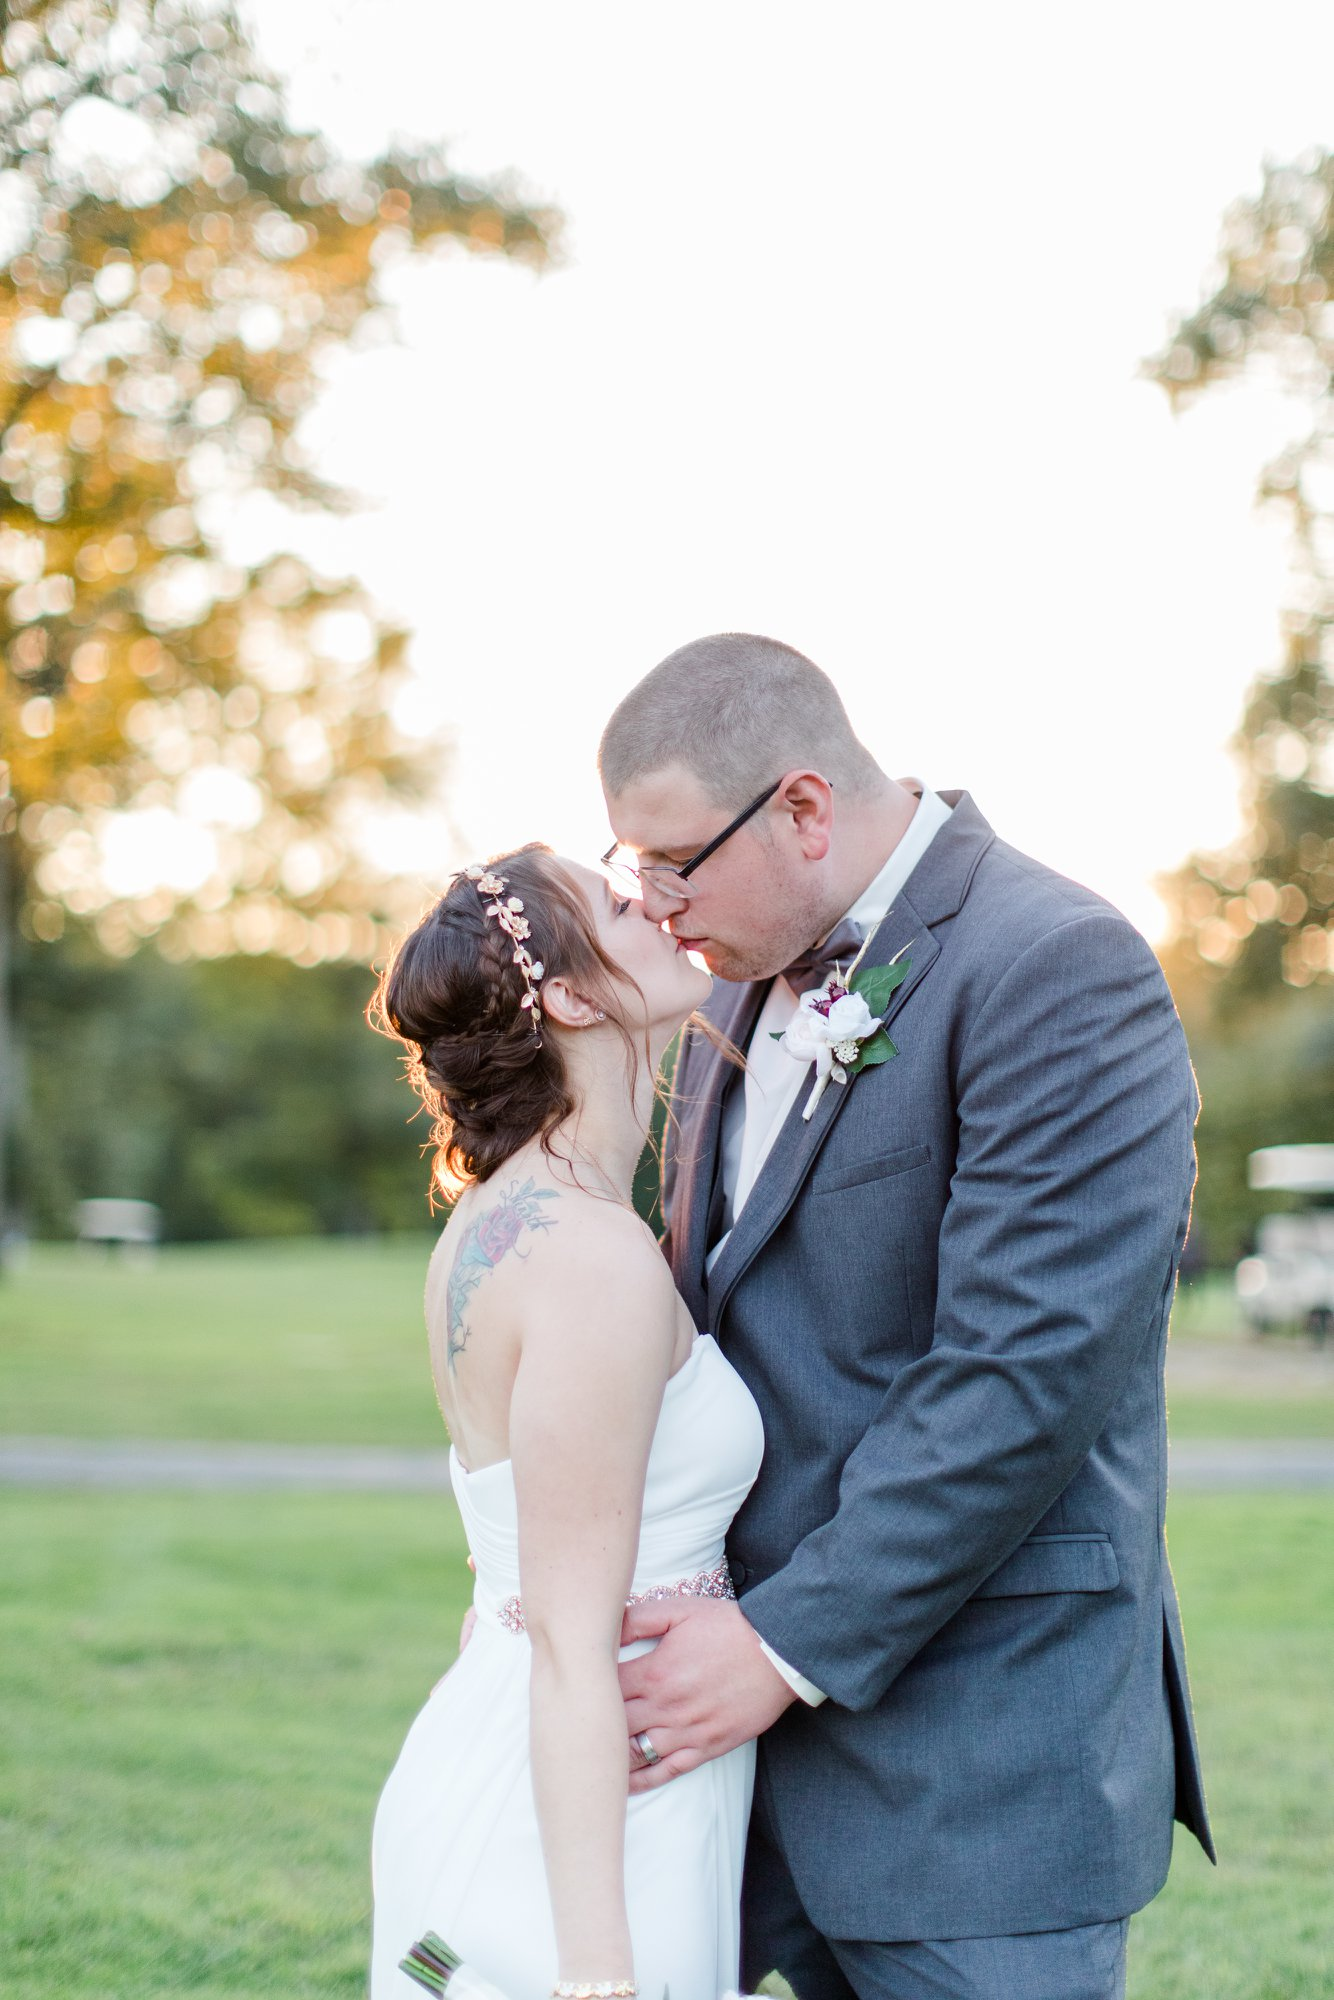 Renee + Ryan at their Leicester Country Club wedding (Leicester, MA)